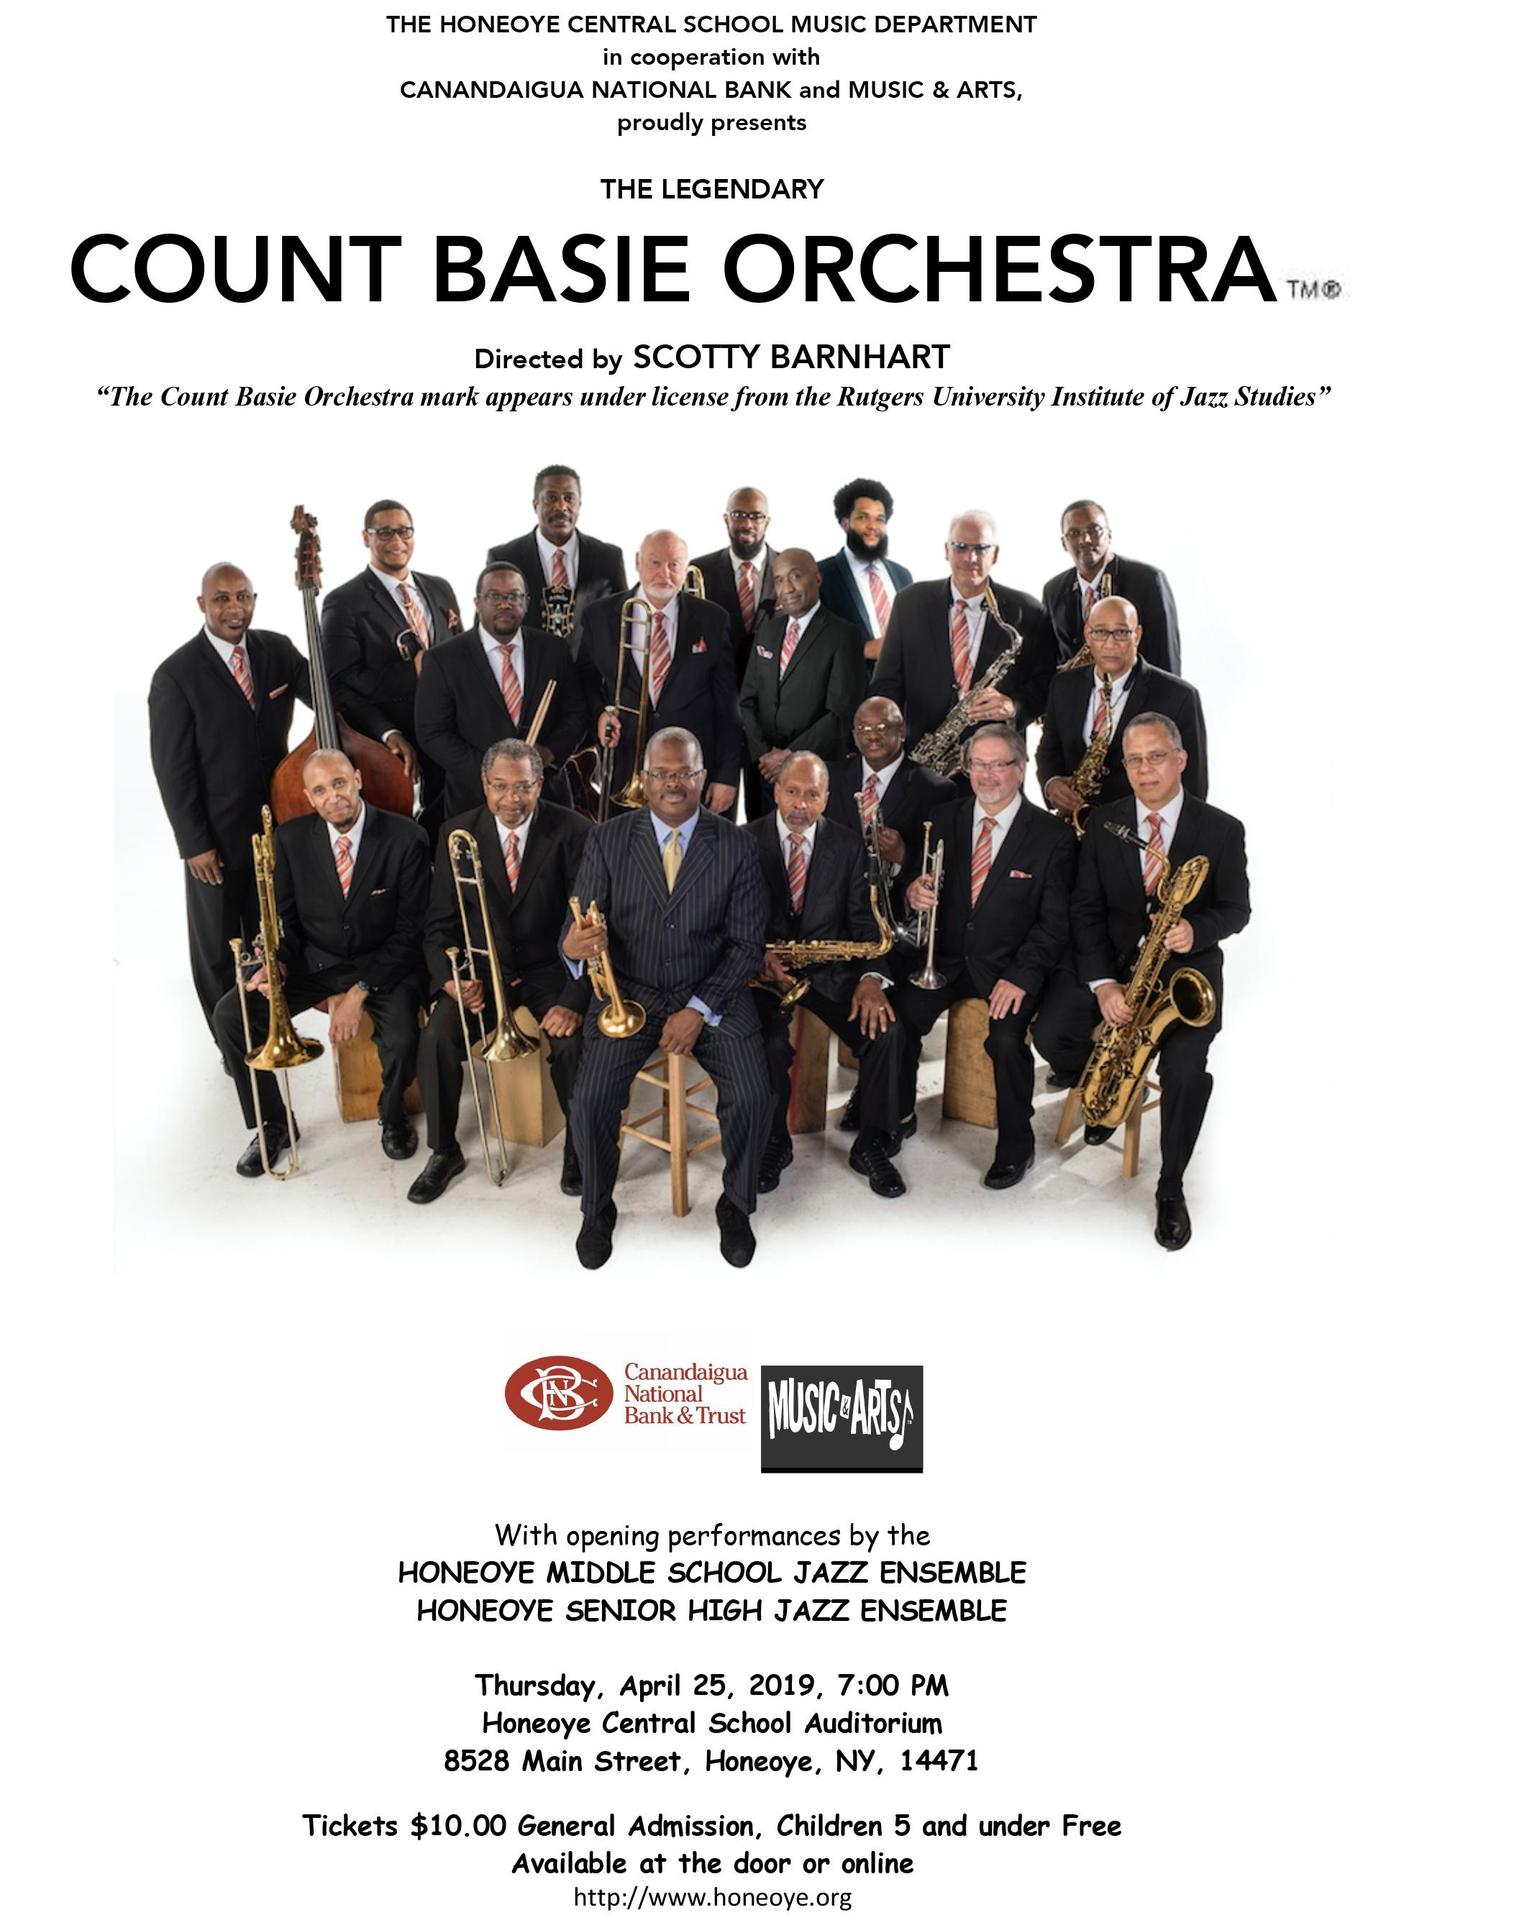 Count Basie Orchestra coming to HCS!